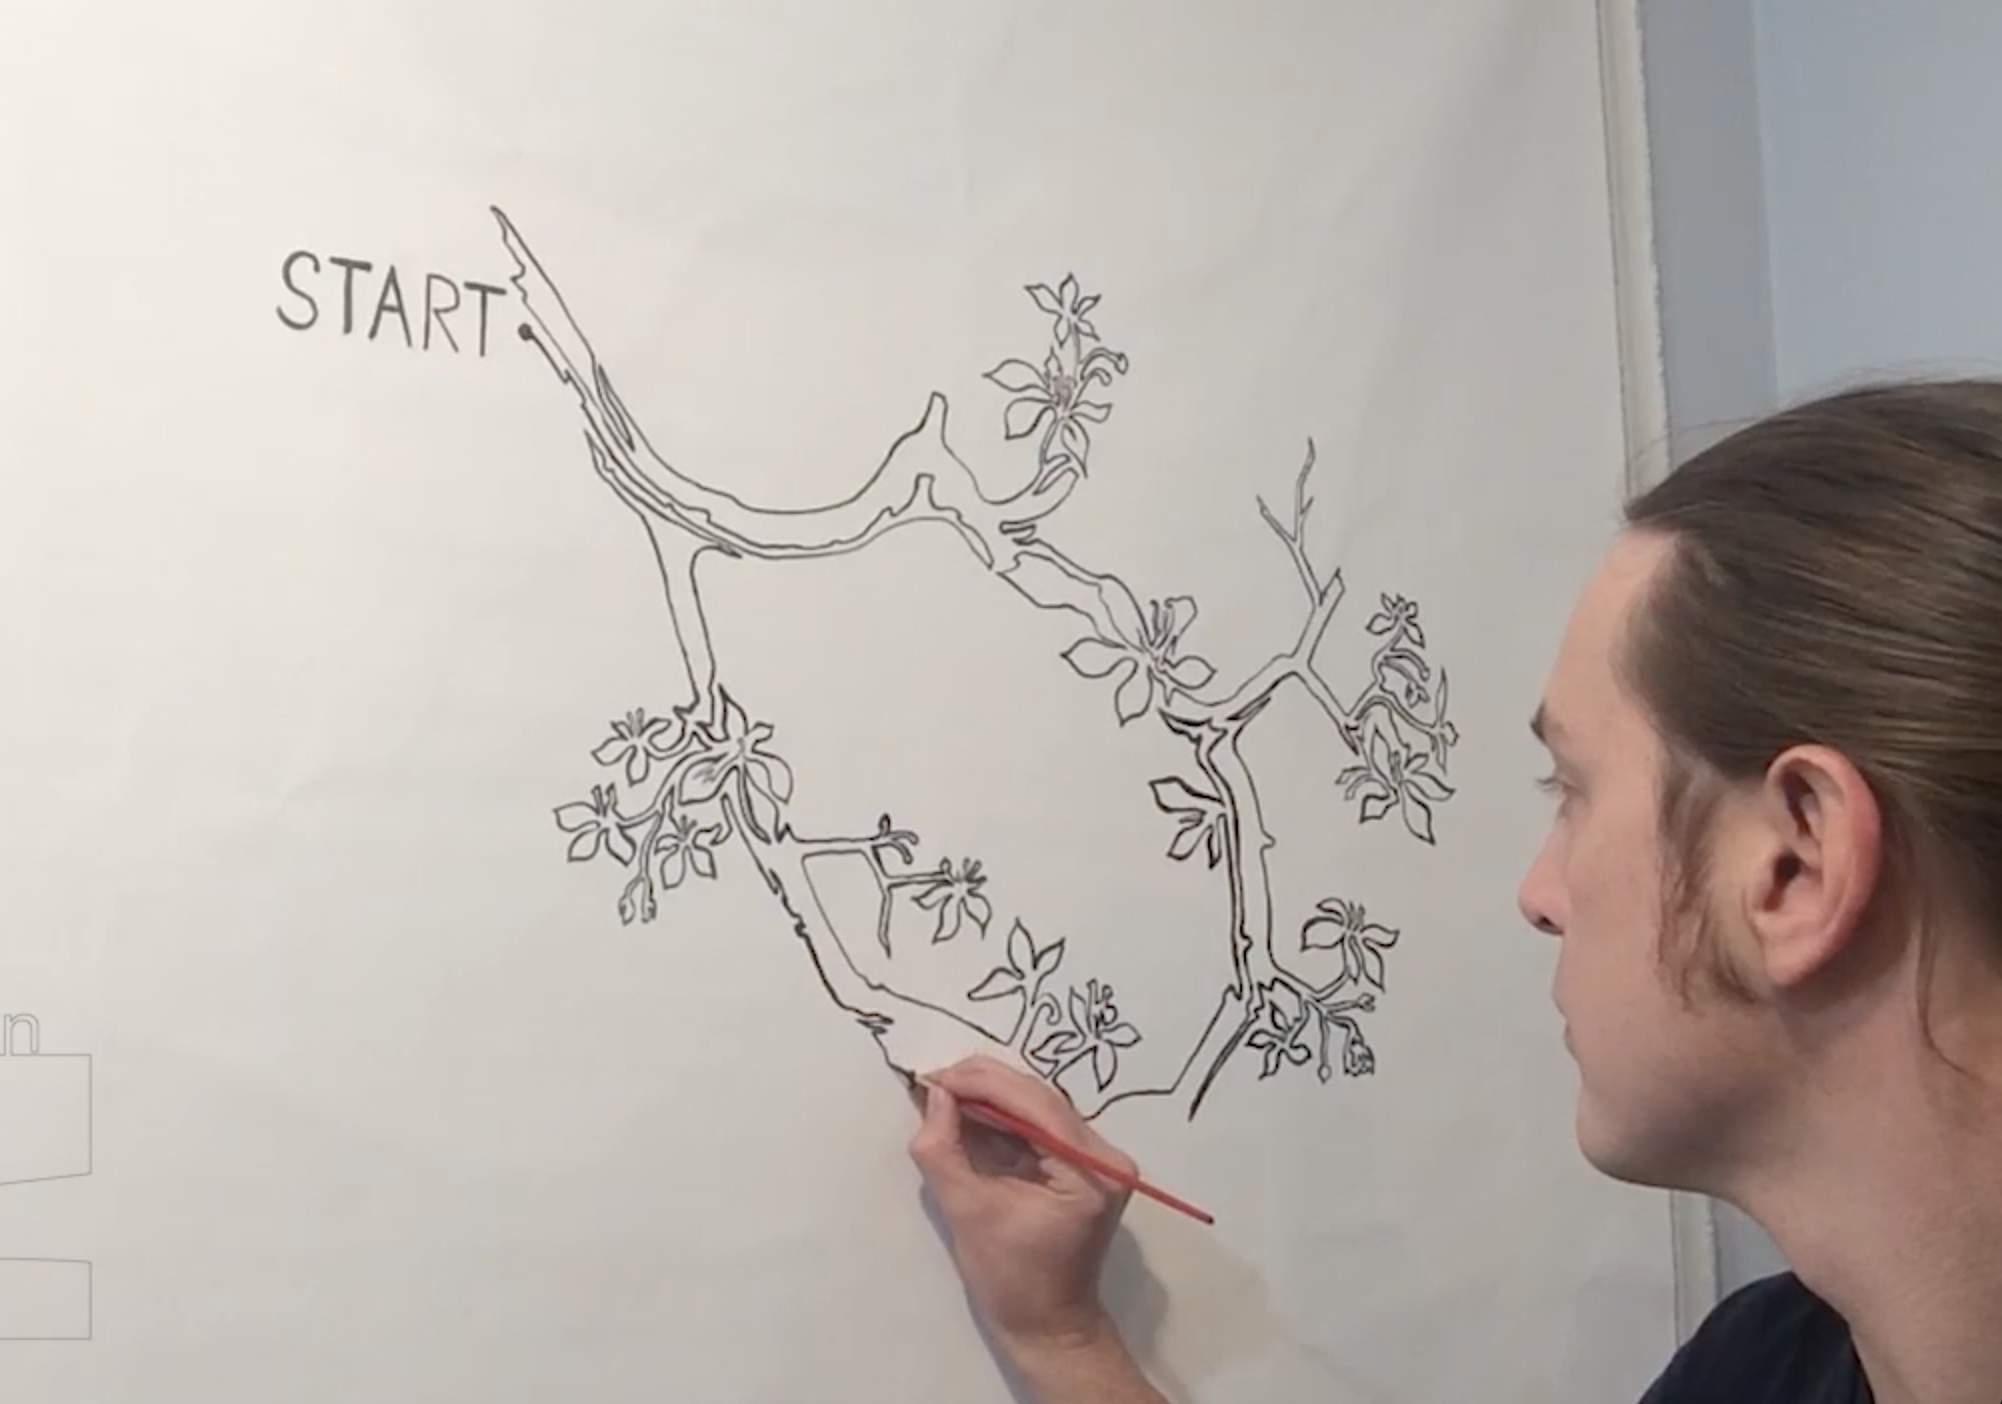 Watch the oneLINE - Artist Jonathan Applegate reveals part of his process is this collection of time-lapse and stop animation videos. Enjoy!